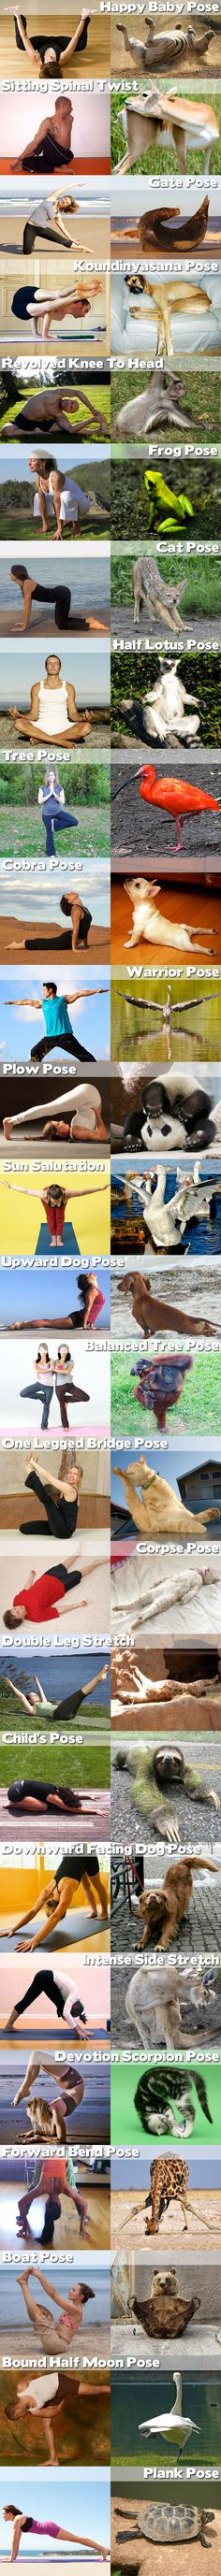 Animals really do exercise